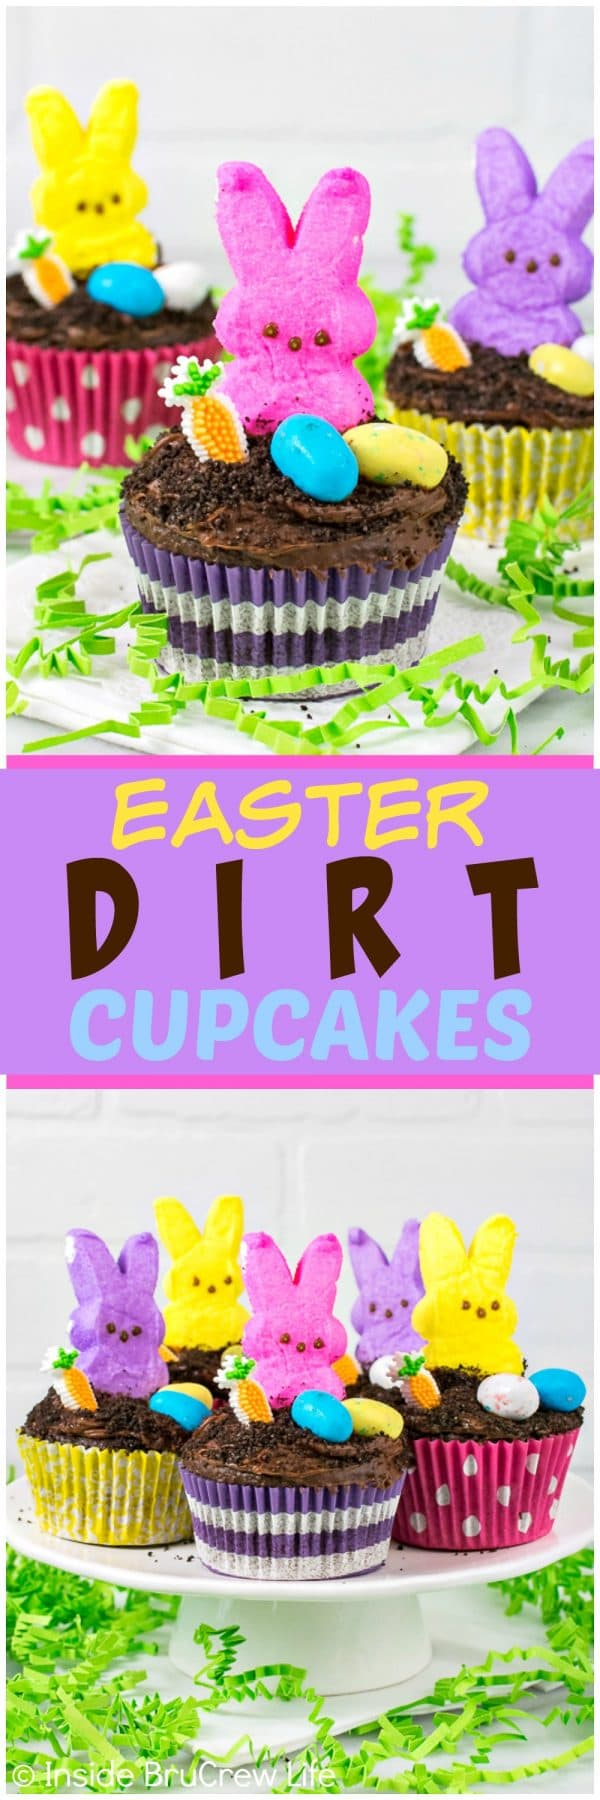 Easter Dirt Cupcakes - a hidden chocolate pudding center and cookie crumbs make these easy cupcakes disappear in a hurry! Great Easter party recipe!